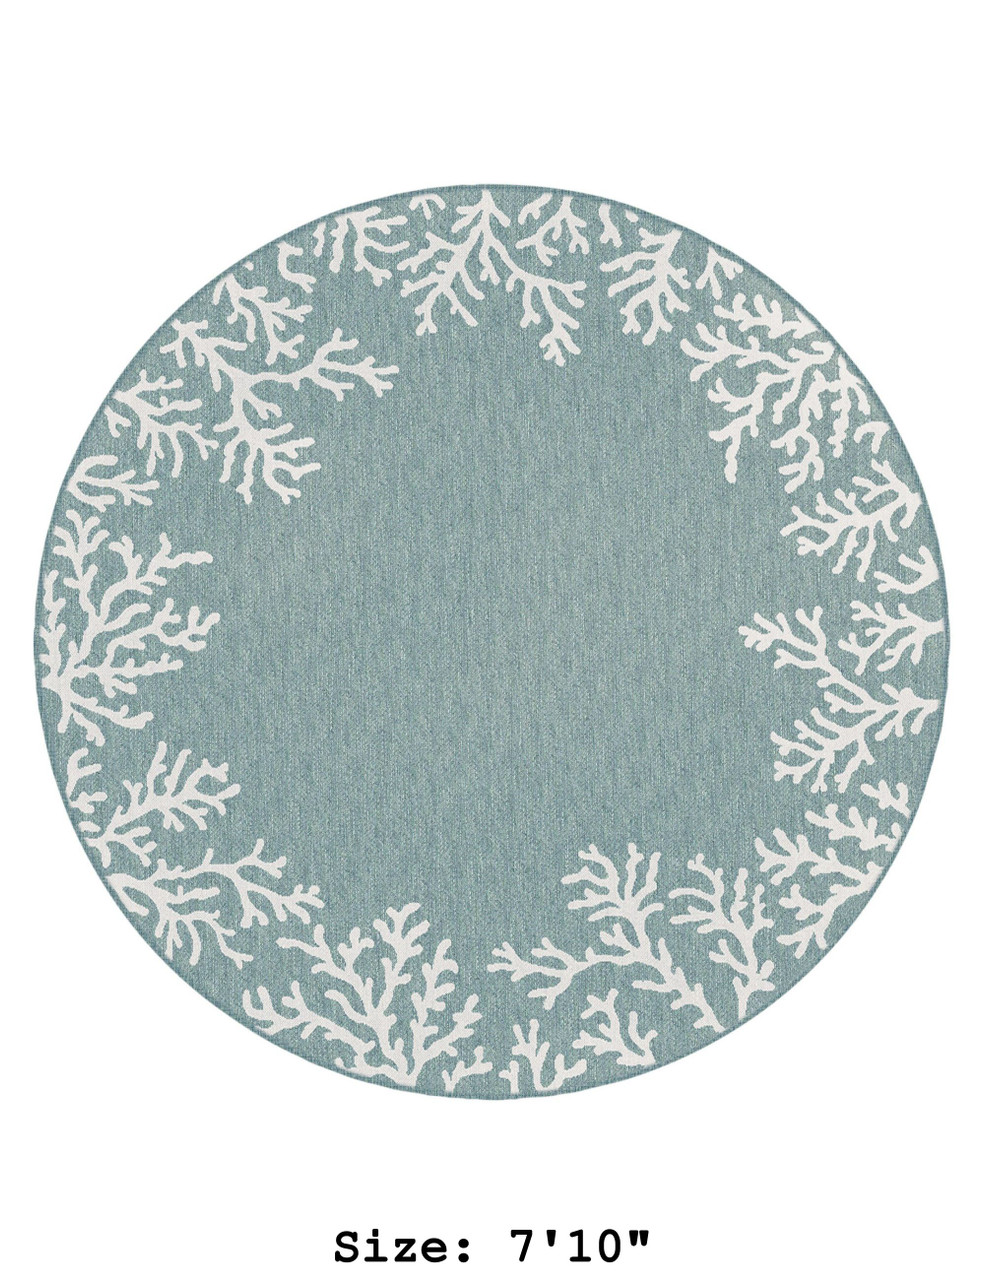 Aqua Carmel Coral Border Indoor/Outdoor Rug - Round